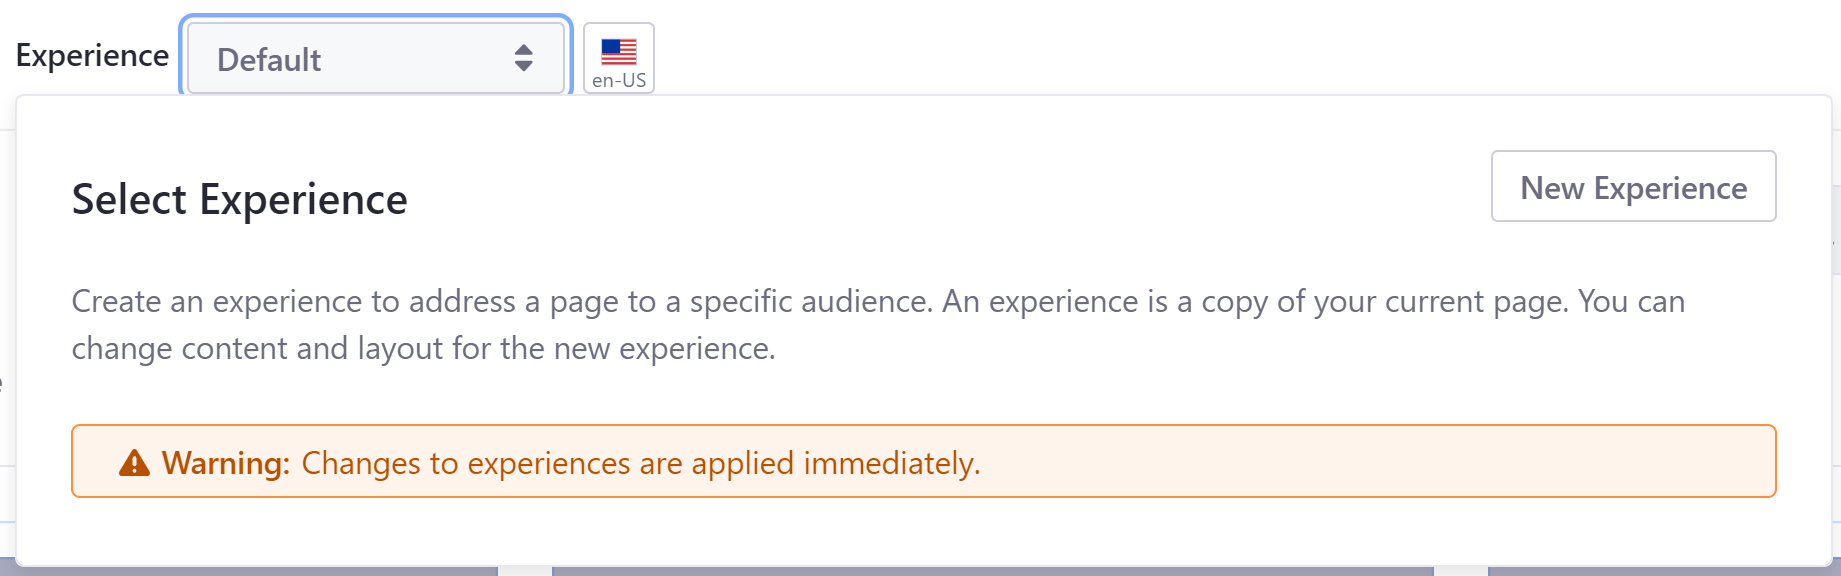 Figure 3: Click on the current experience to create a new one or select a different existing experience.